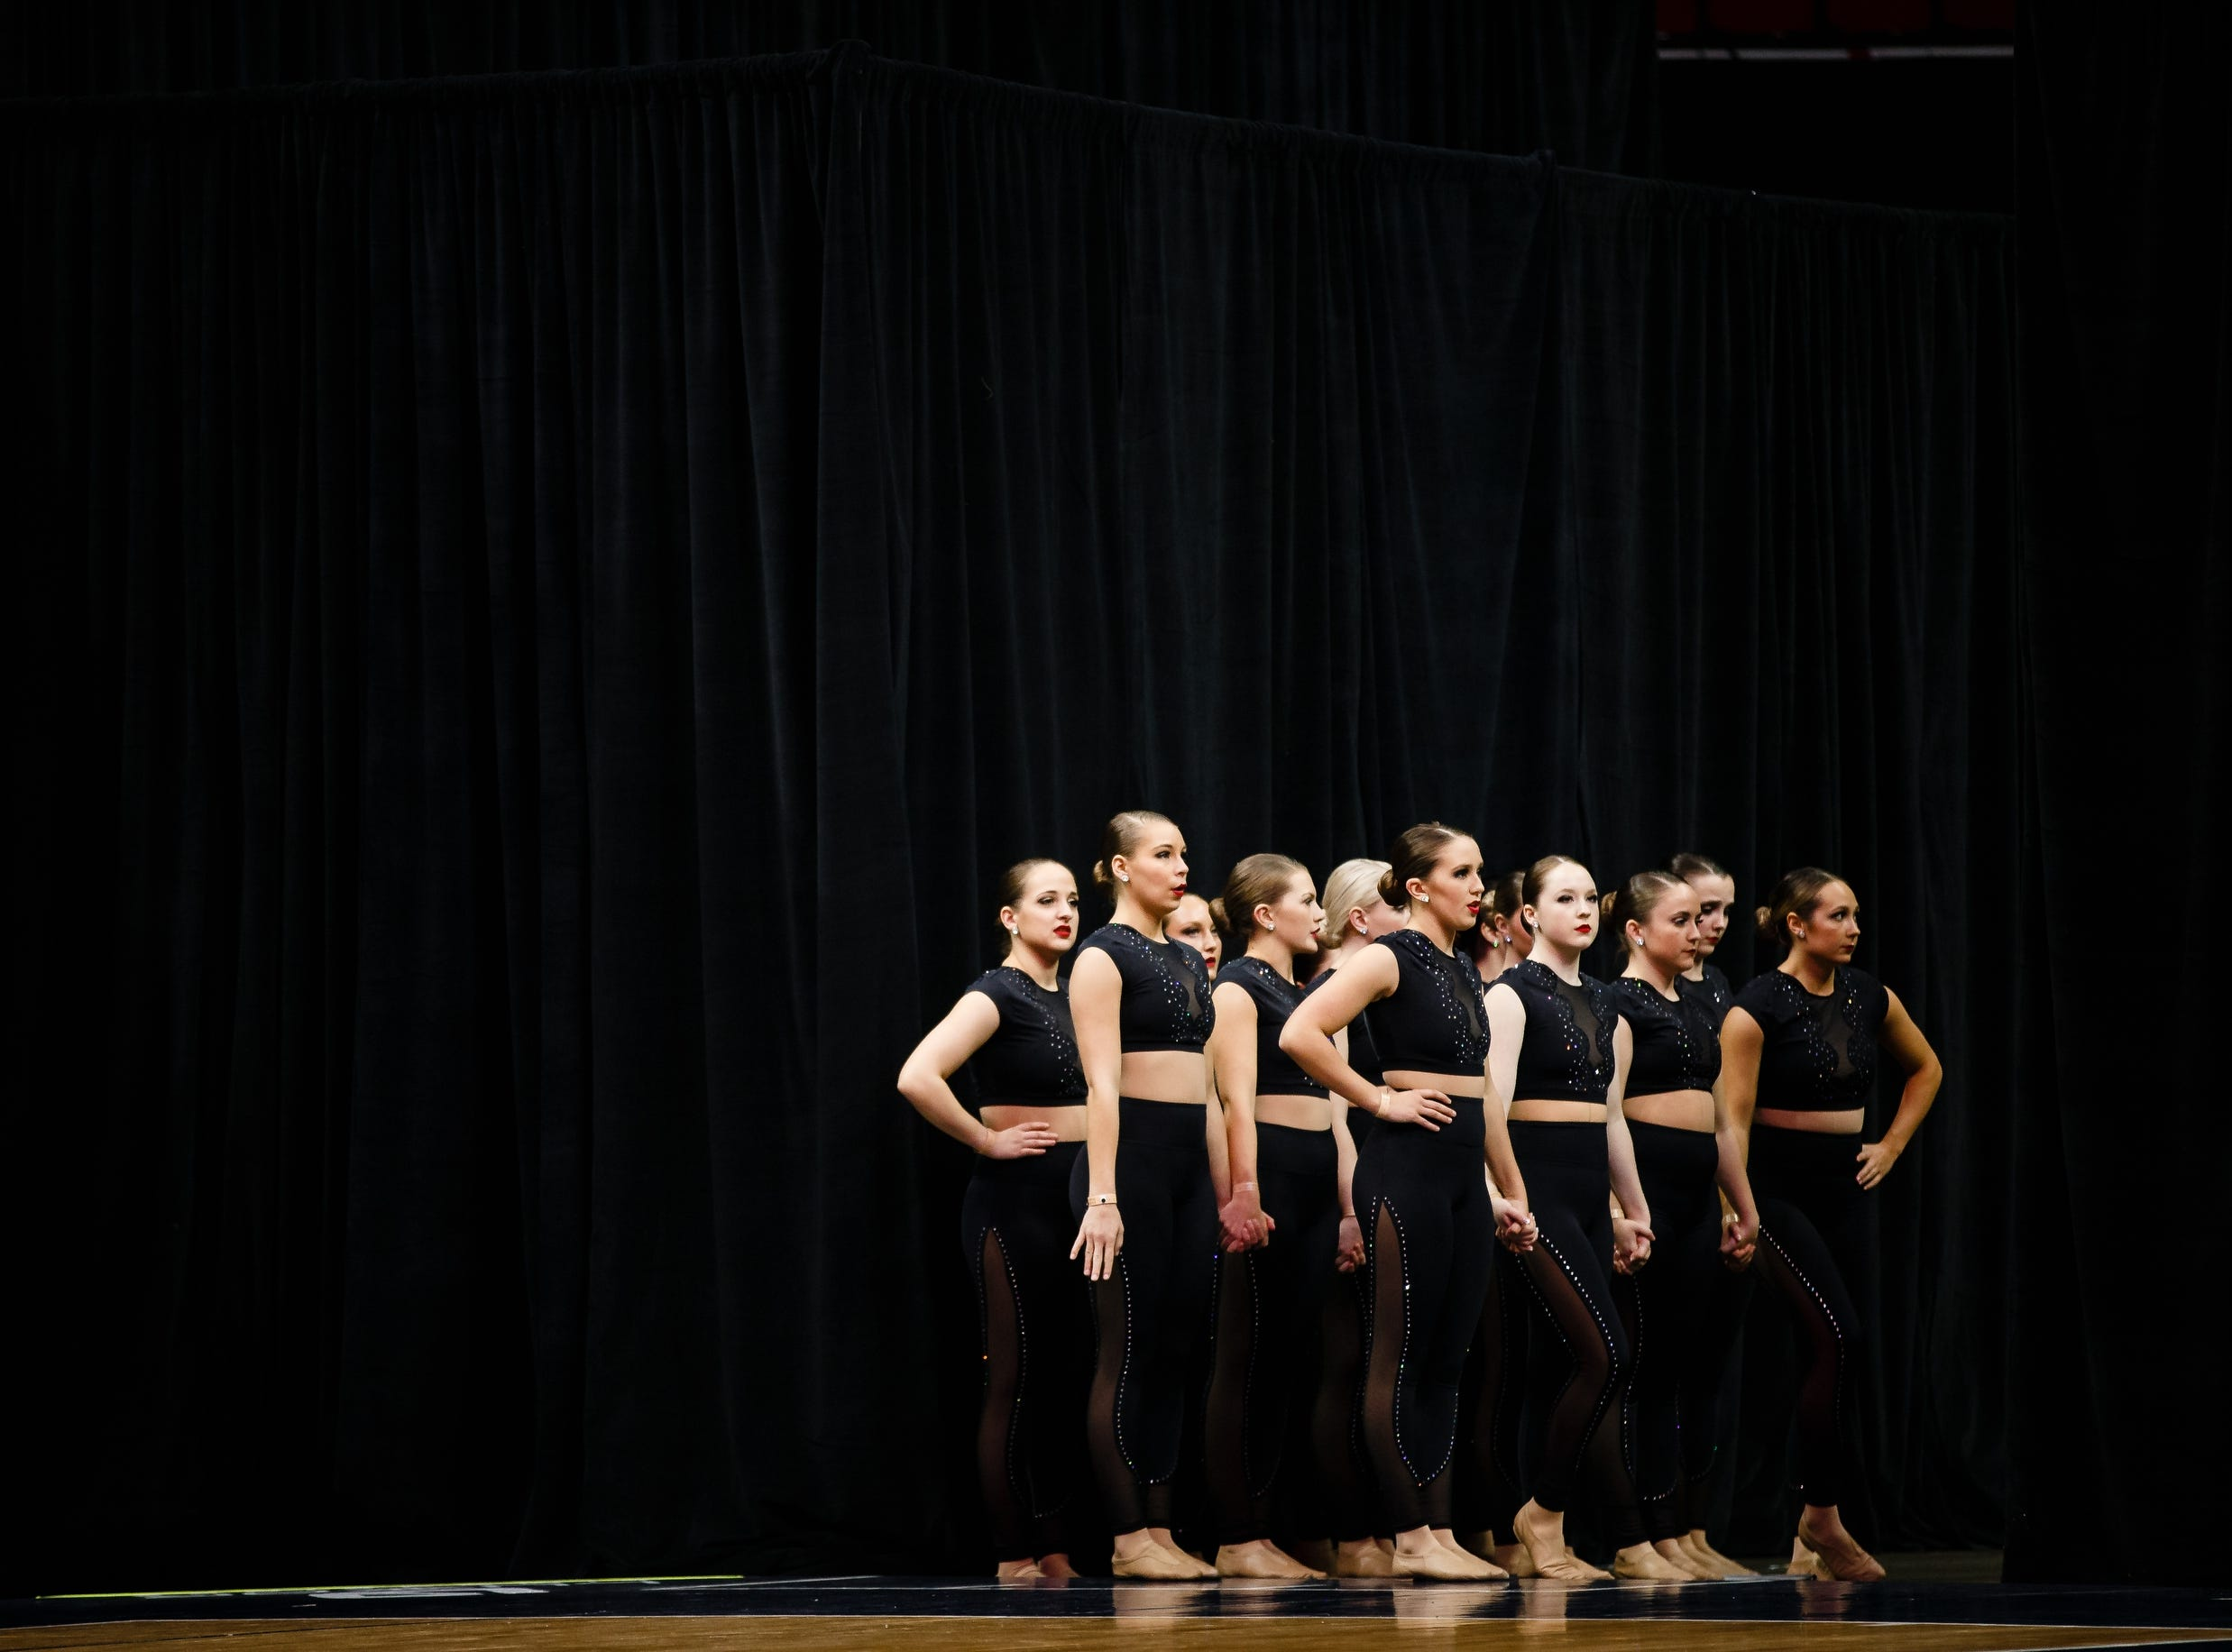 Grandview University dancers wait to perform during the Iowa Dance State Championships at Wells Fargo Arena on Friday, Nov. 30, 2018, in Des Moines.